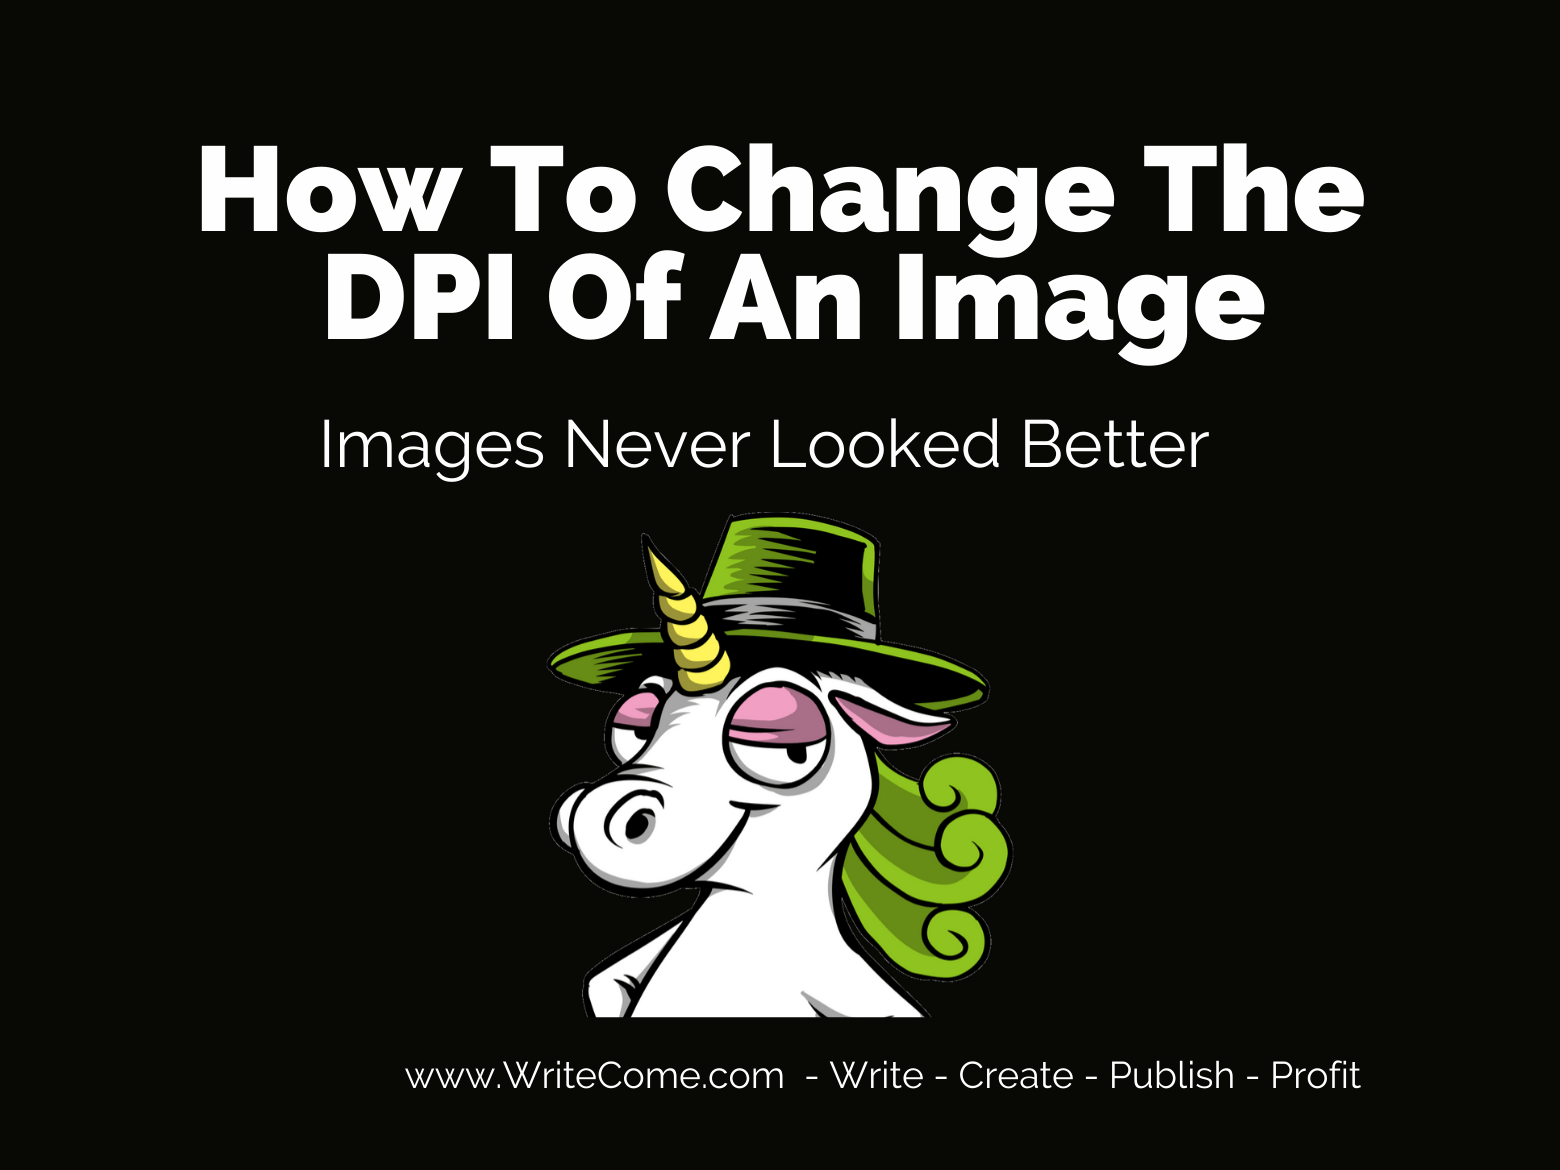 How To Change The DPI Of An Image